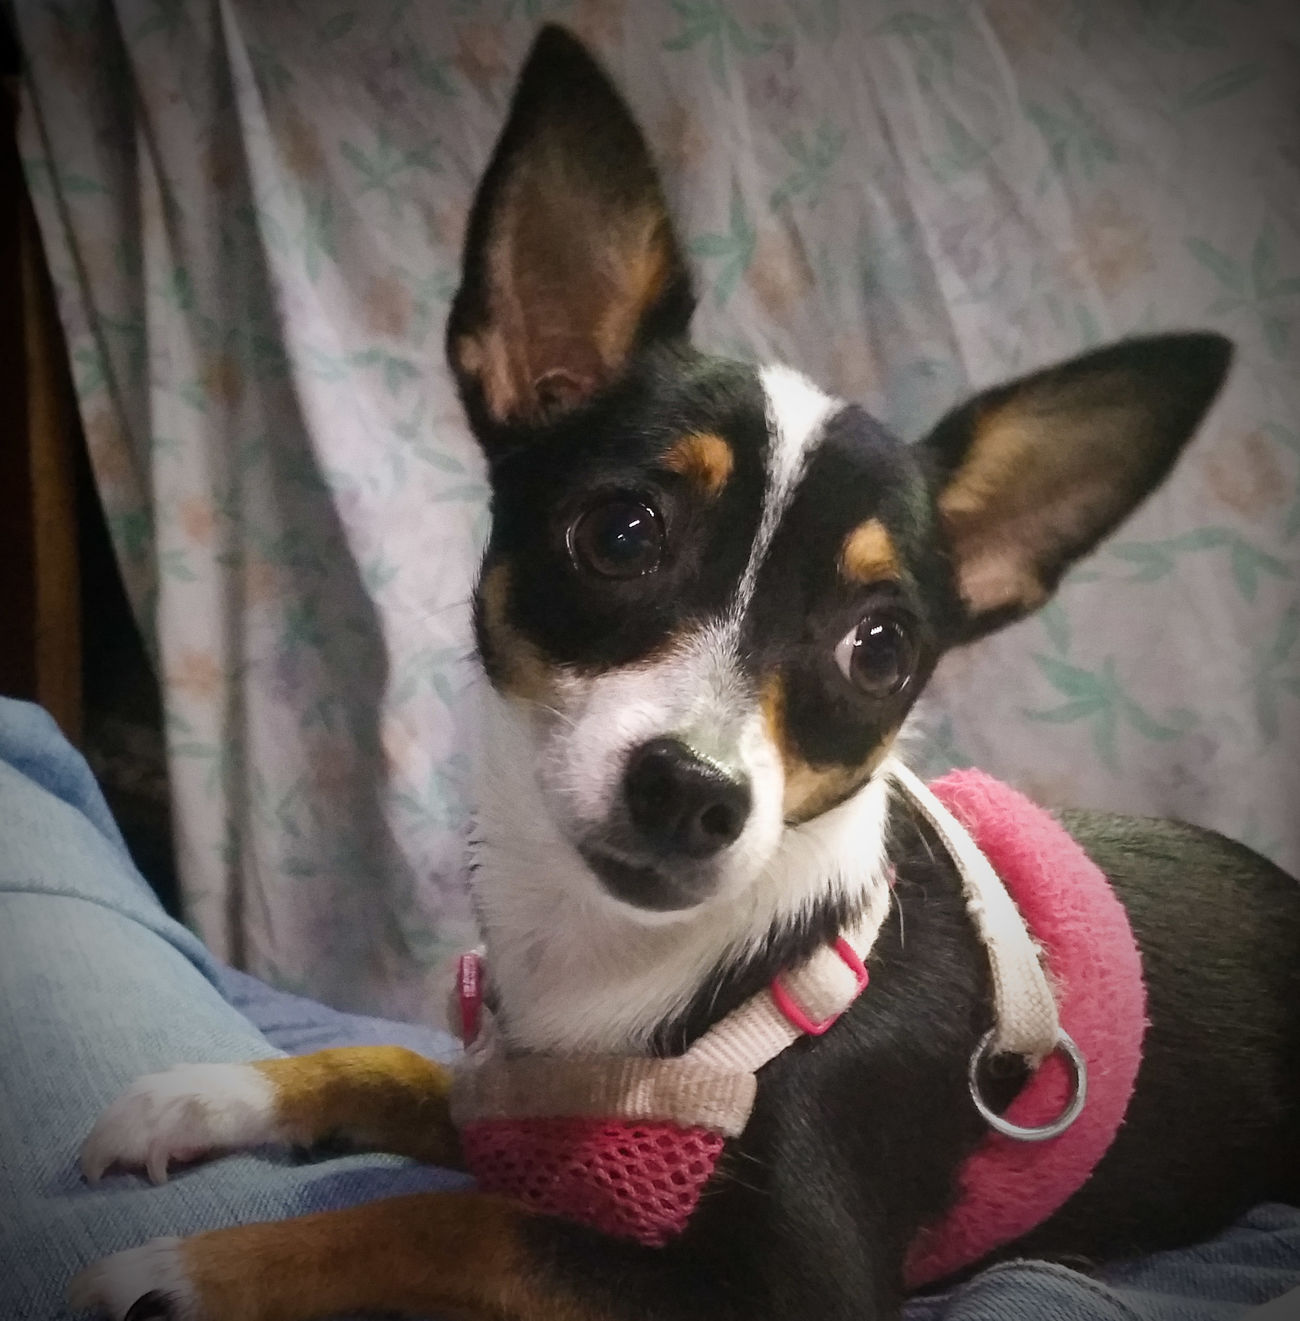 Kat Glamour Shots Cellphone Photography 6 Months Old Dog Named Kat Rat Terrier Spoiled Dog My Dogs Are Cooler Than Your Kids Not A Care In The World Chihuahua Puppy Multi Colored Chihuahualife Dog's Life Chihuahuas Of Eyeem Live Oak Animal Hospital Rescued ❤ Dog My Heart ❤